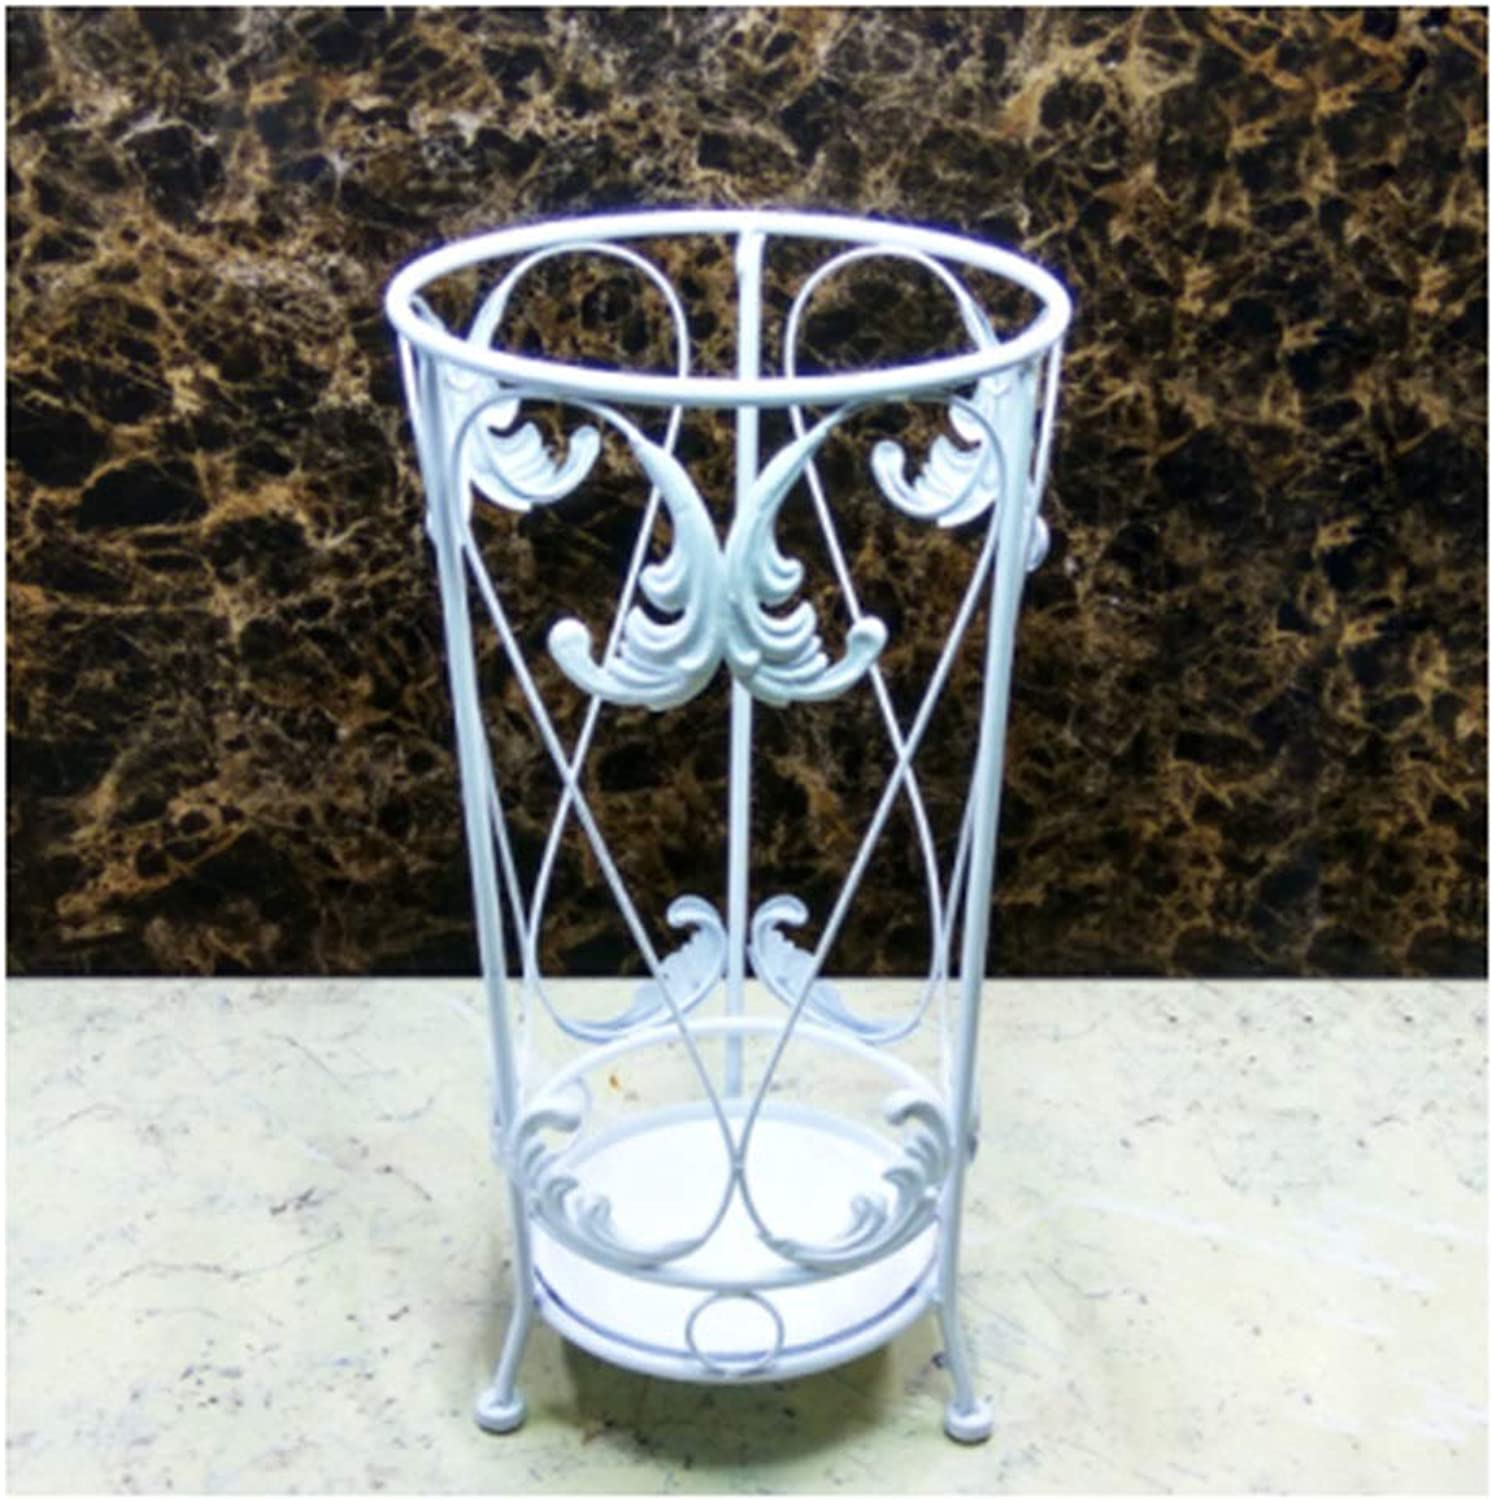 Zr Warm and Simple Carved Wrought Iron Umbrella Stand Home Hotel Large Capacity Storage Rack (color   White)